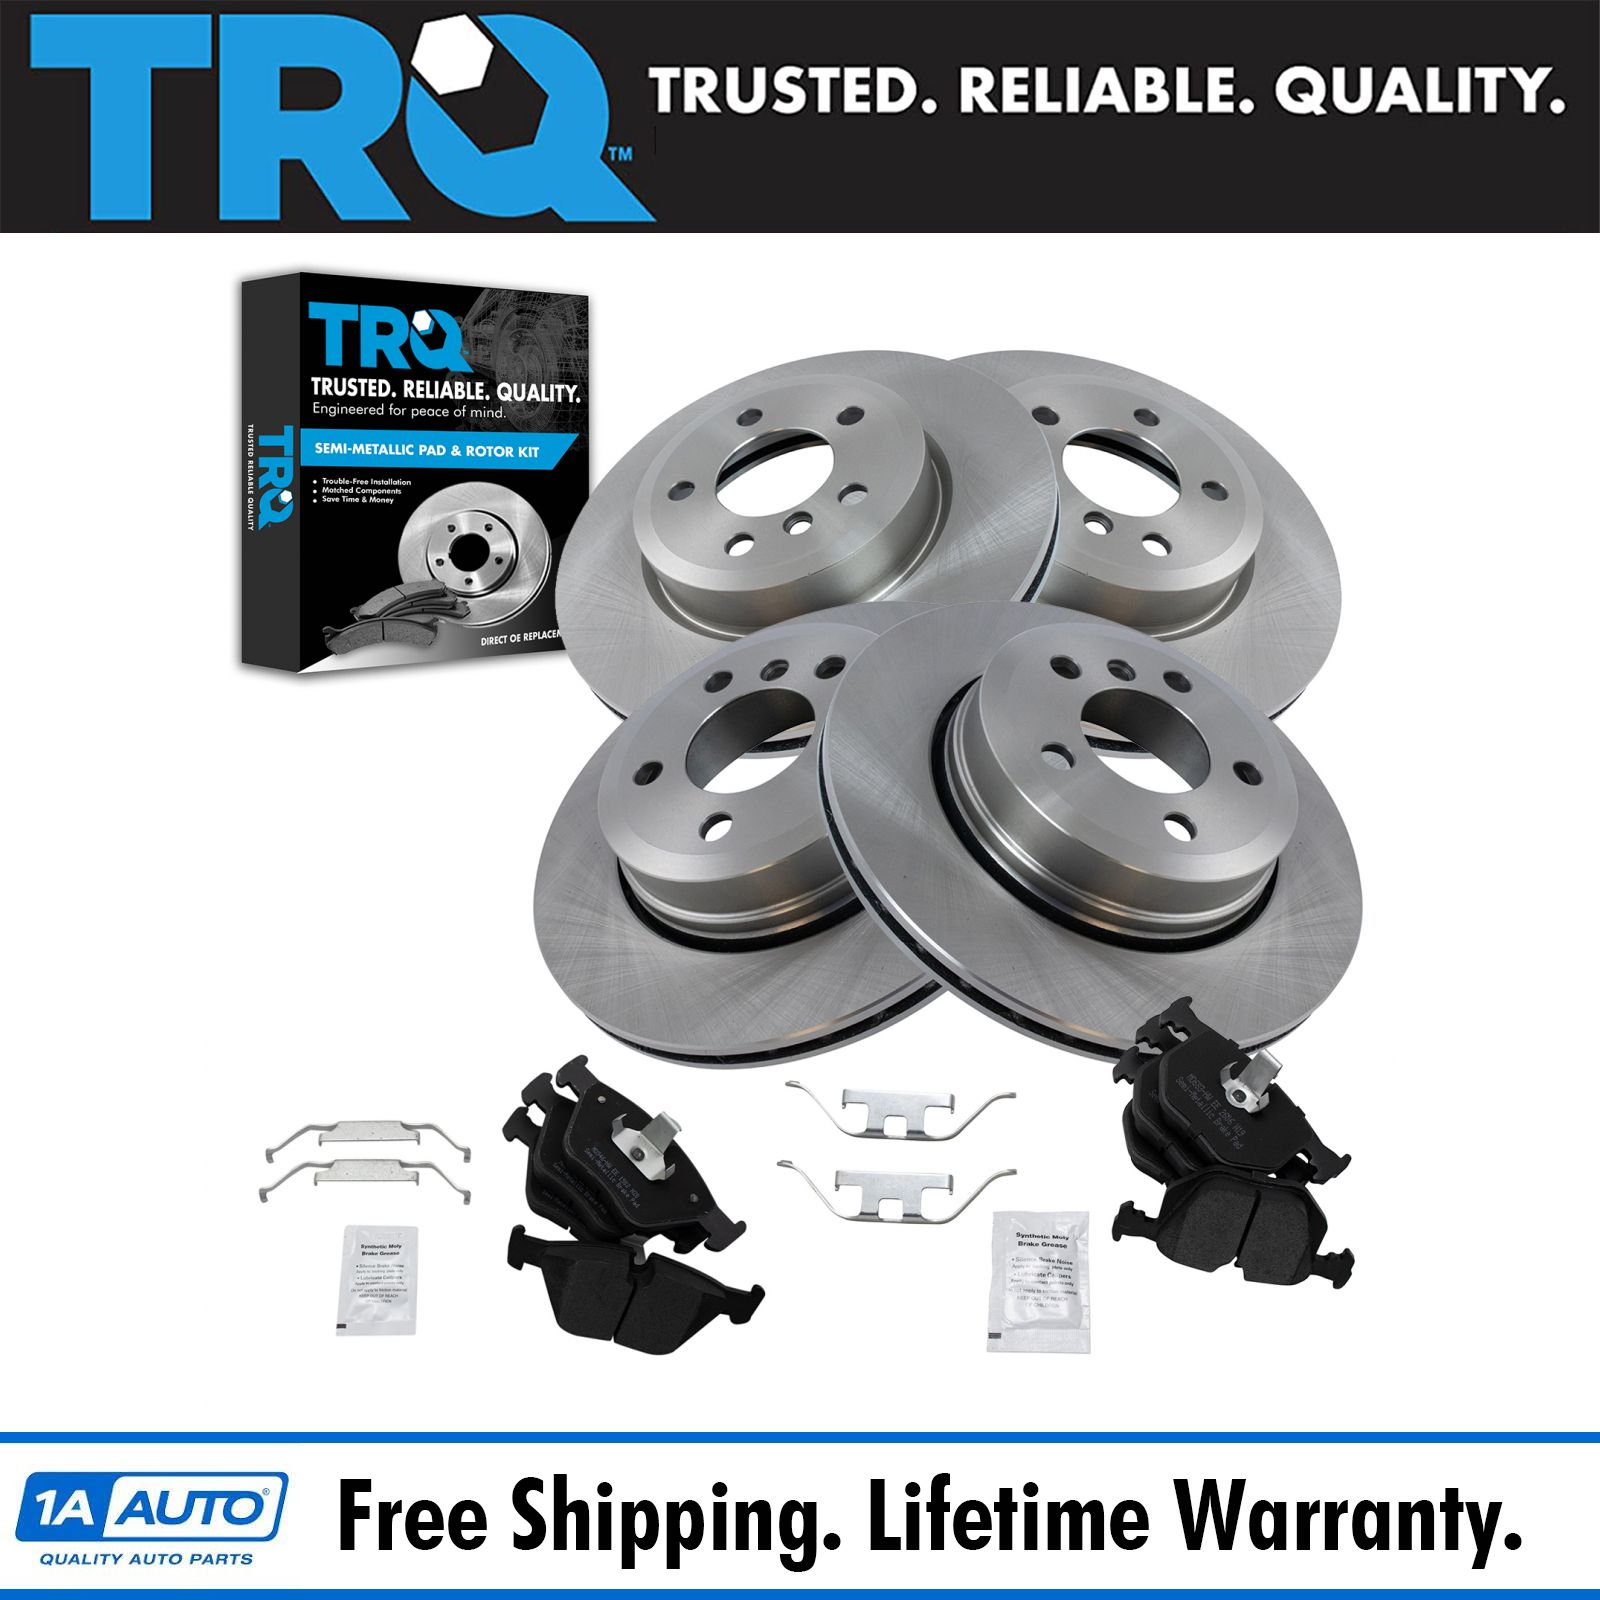 Both Left and Right 2007 For Mazda 3 Front Set Semi Metallic Brake Pads with 2 Years Manufacturer Warranty